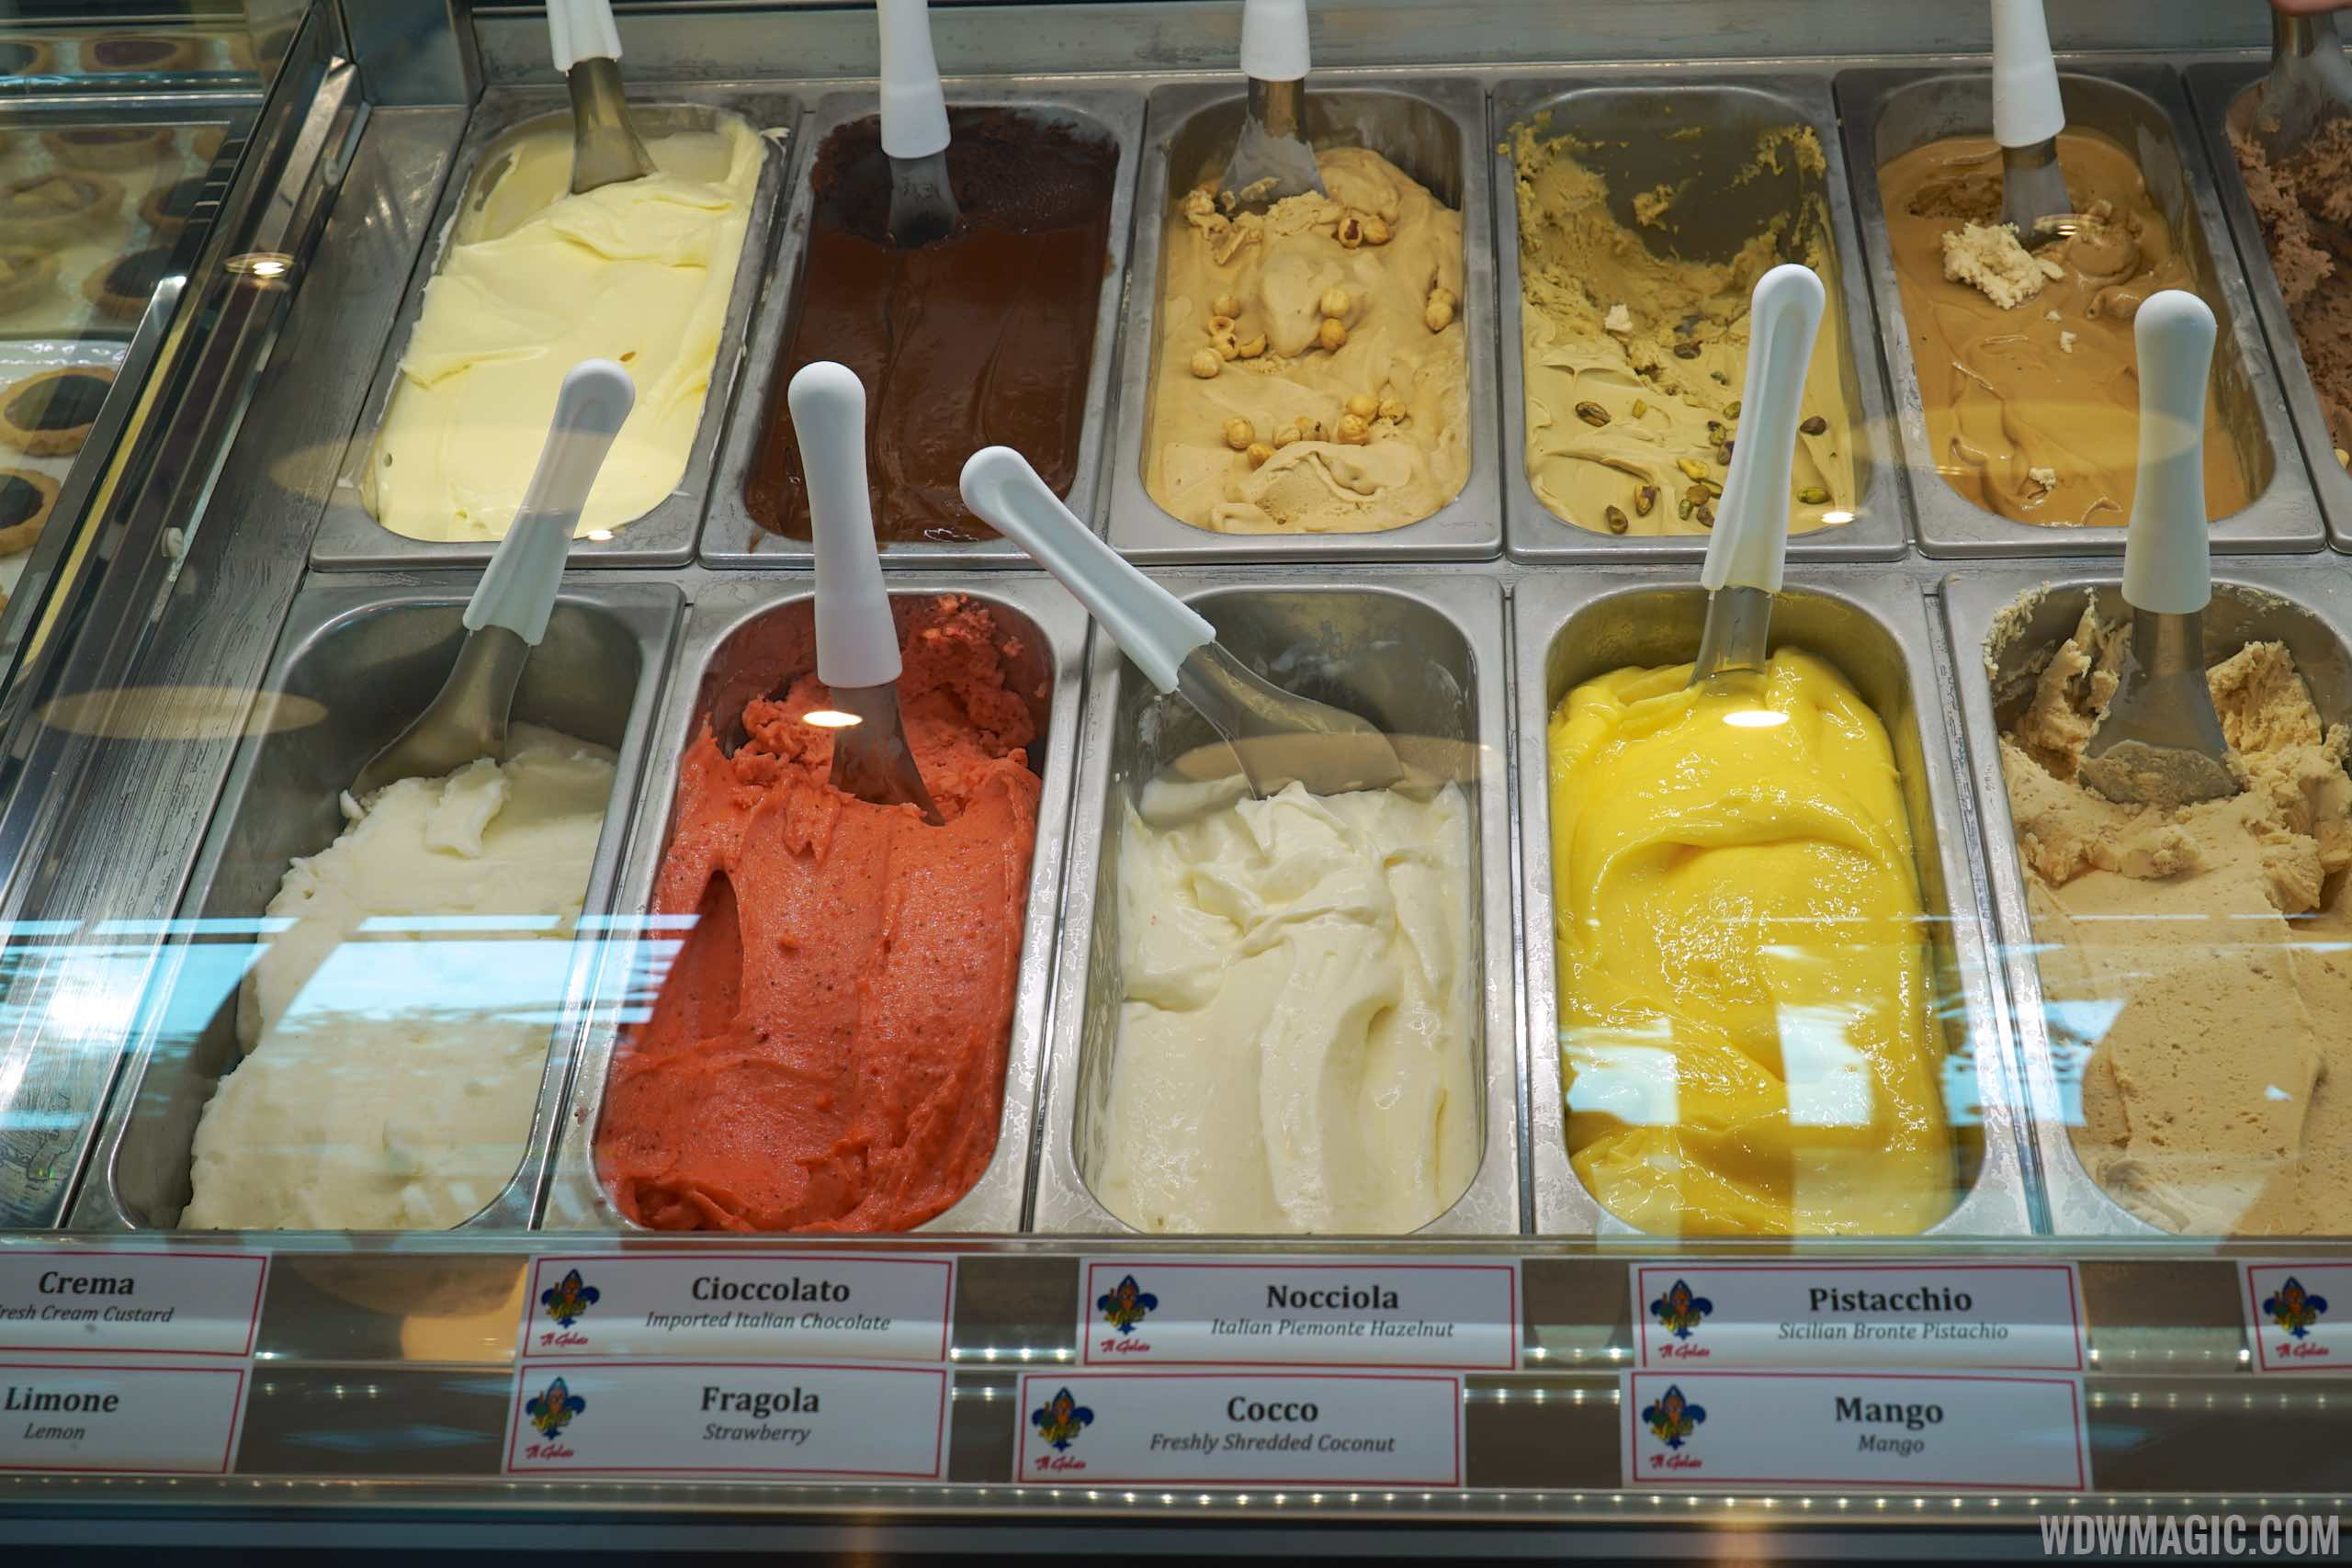 Vivoli Gelateria - Gelato Display